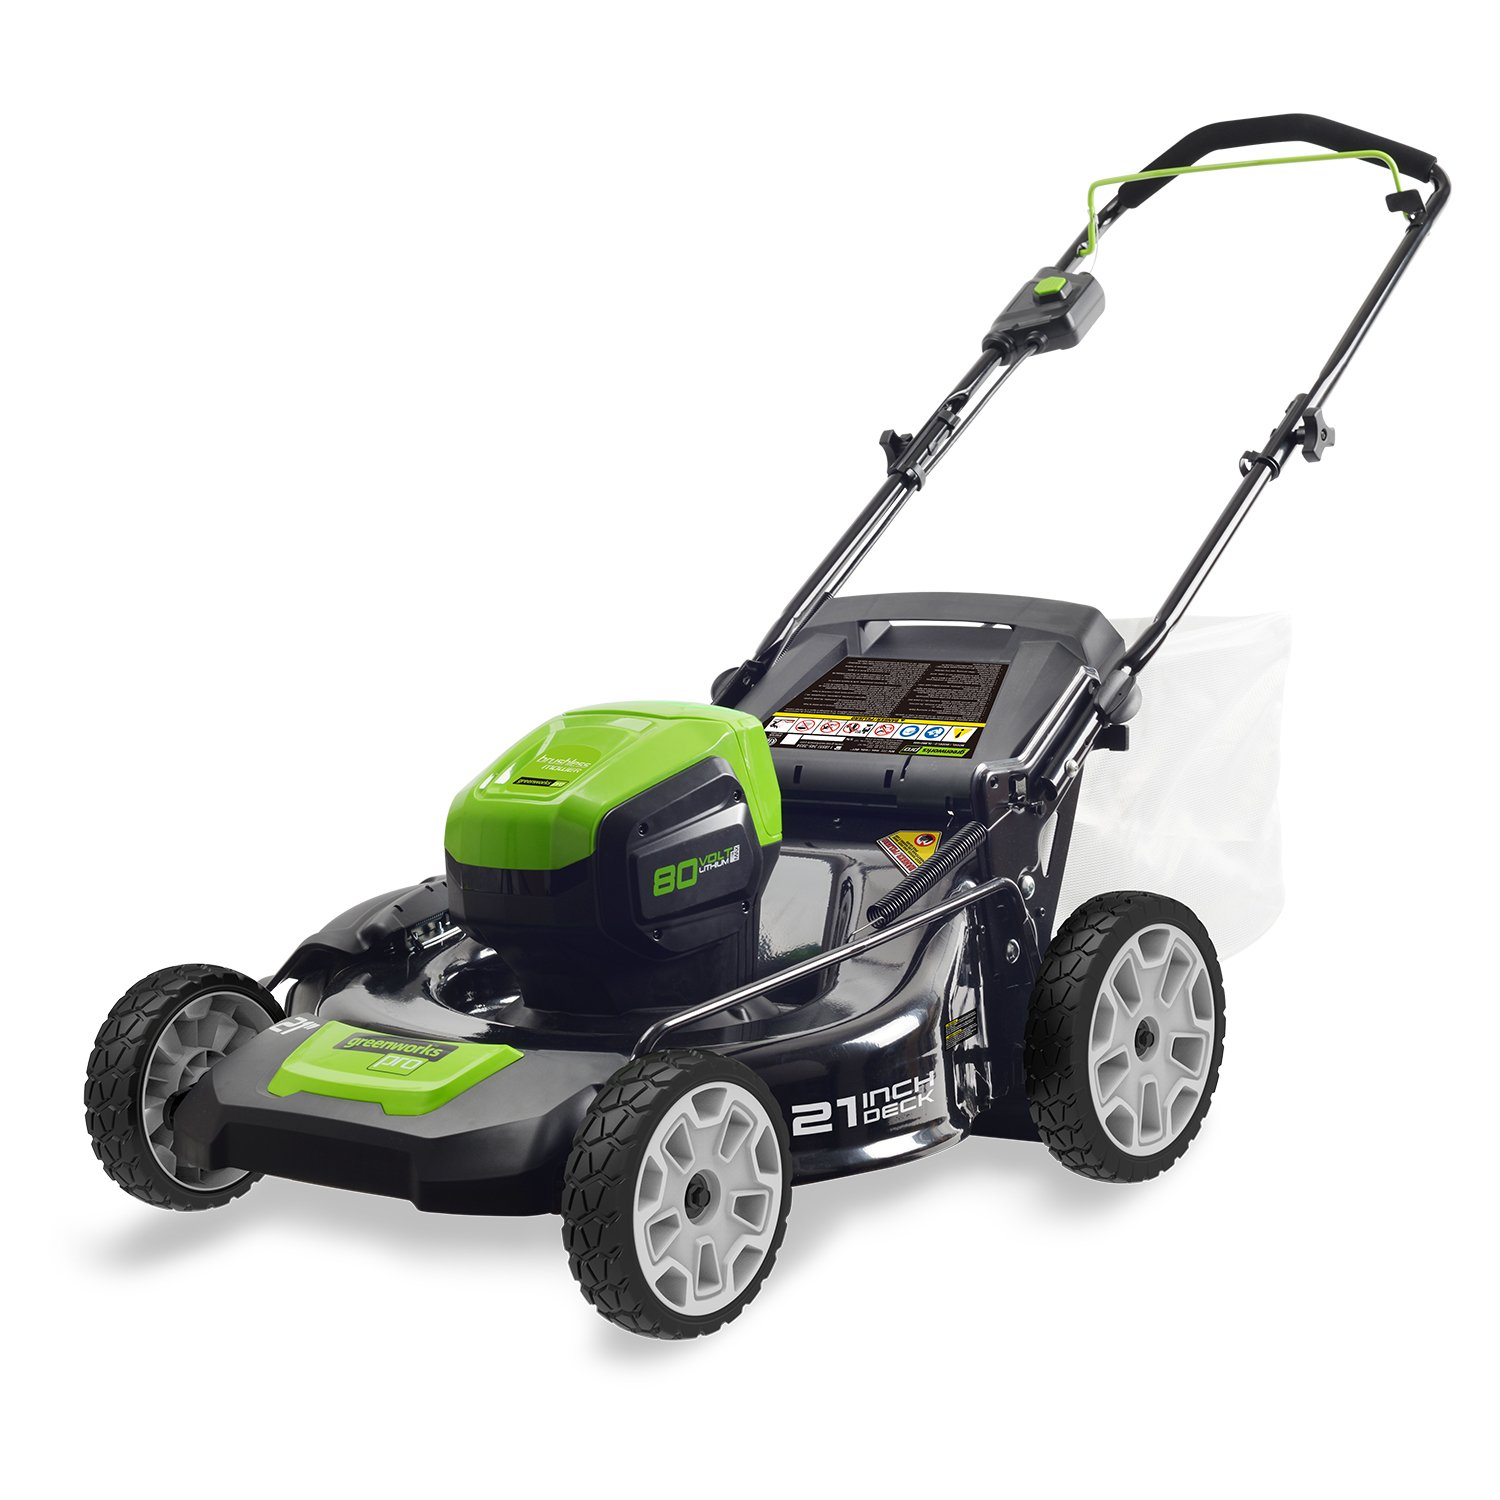 (2502202) 21-Inch 80V Cordless Lawn Mower from Greenworks